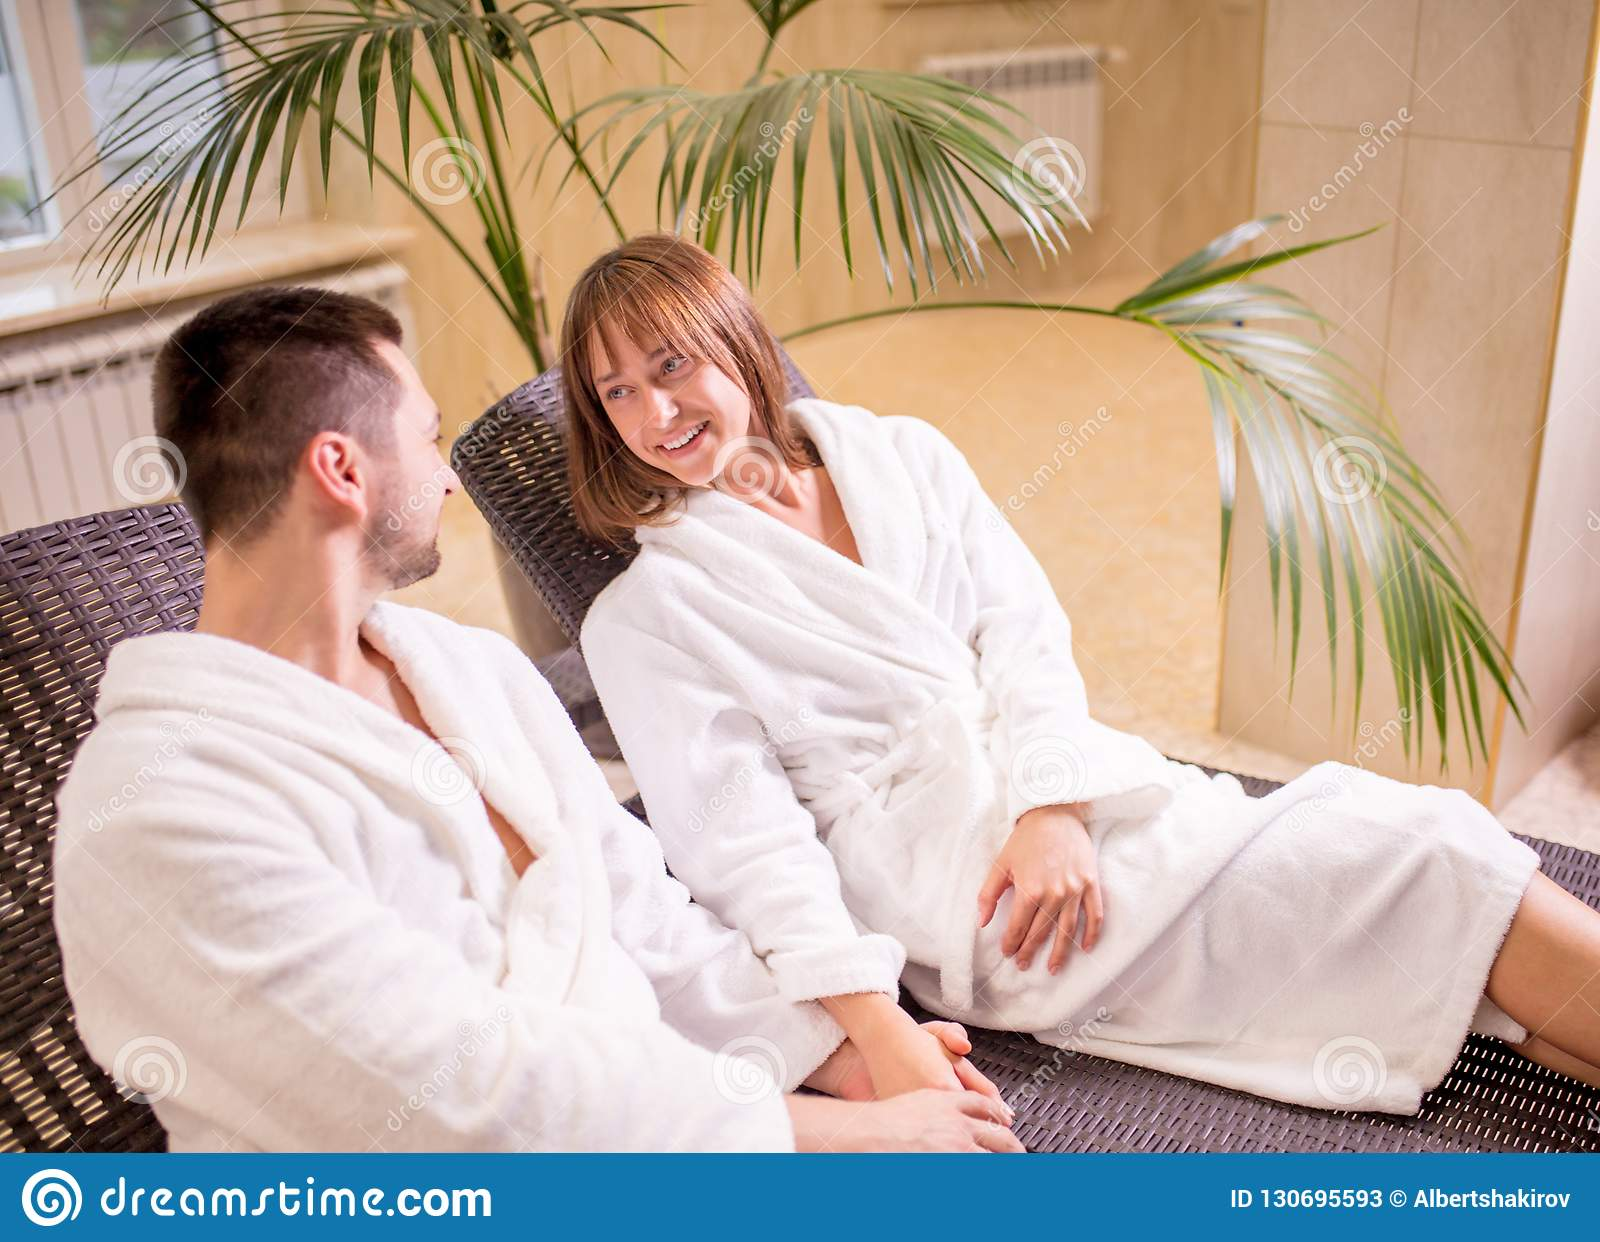 Happy young couple relaxing together at day spa